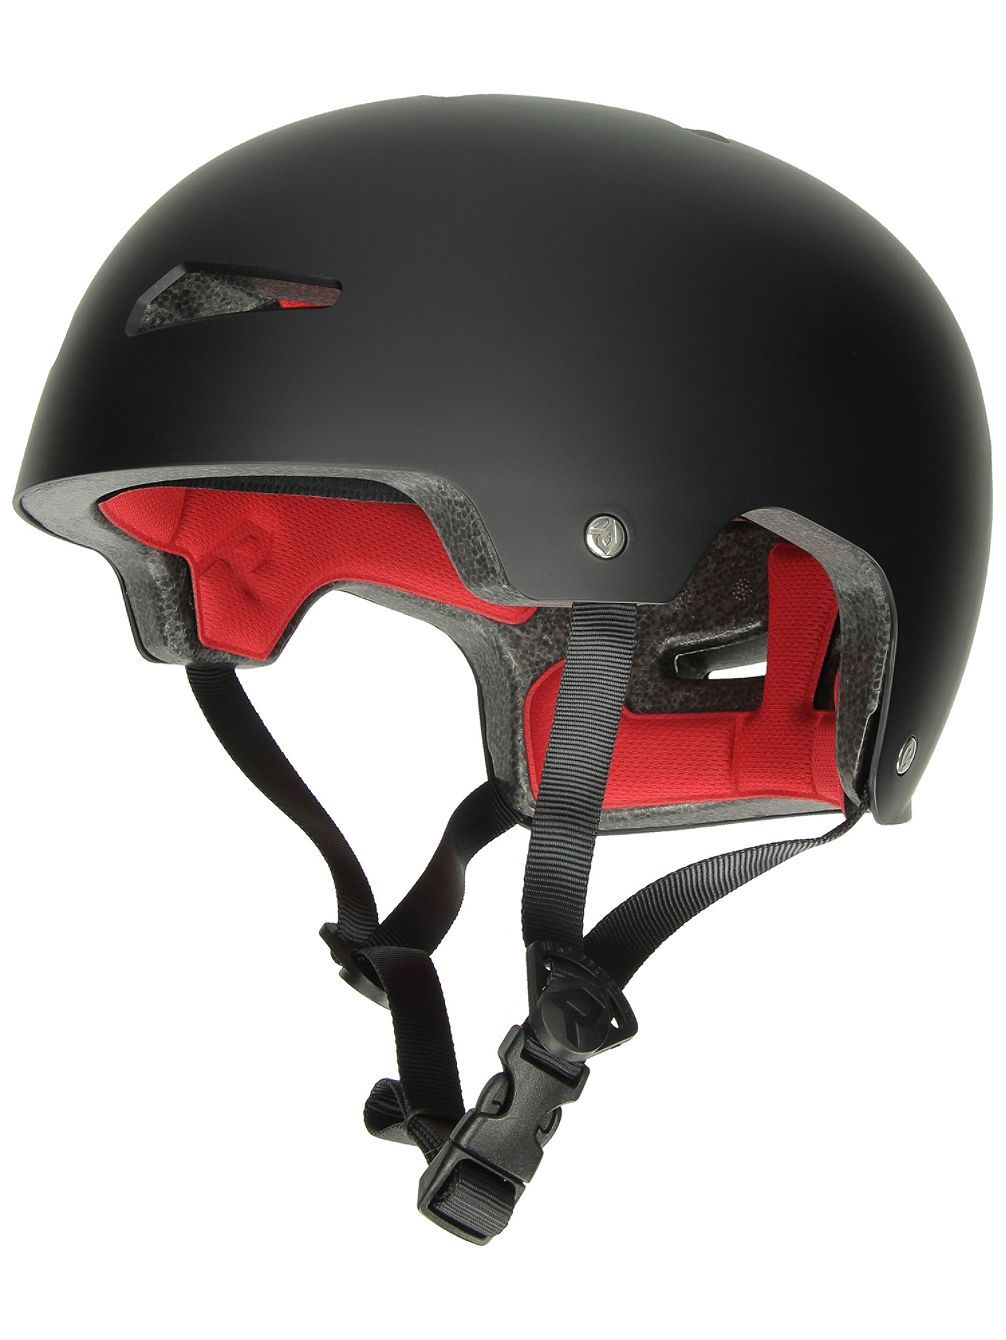 Elite 2.0 Casco da Skateboard